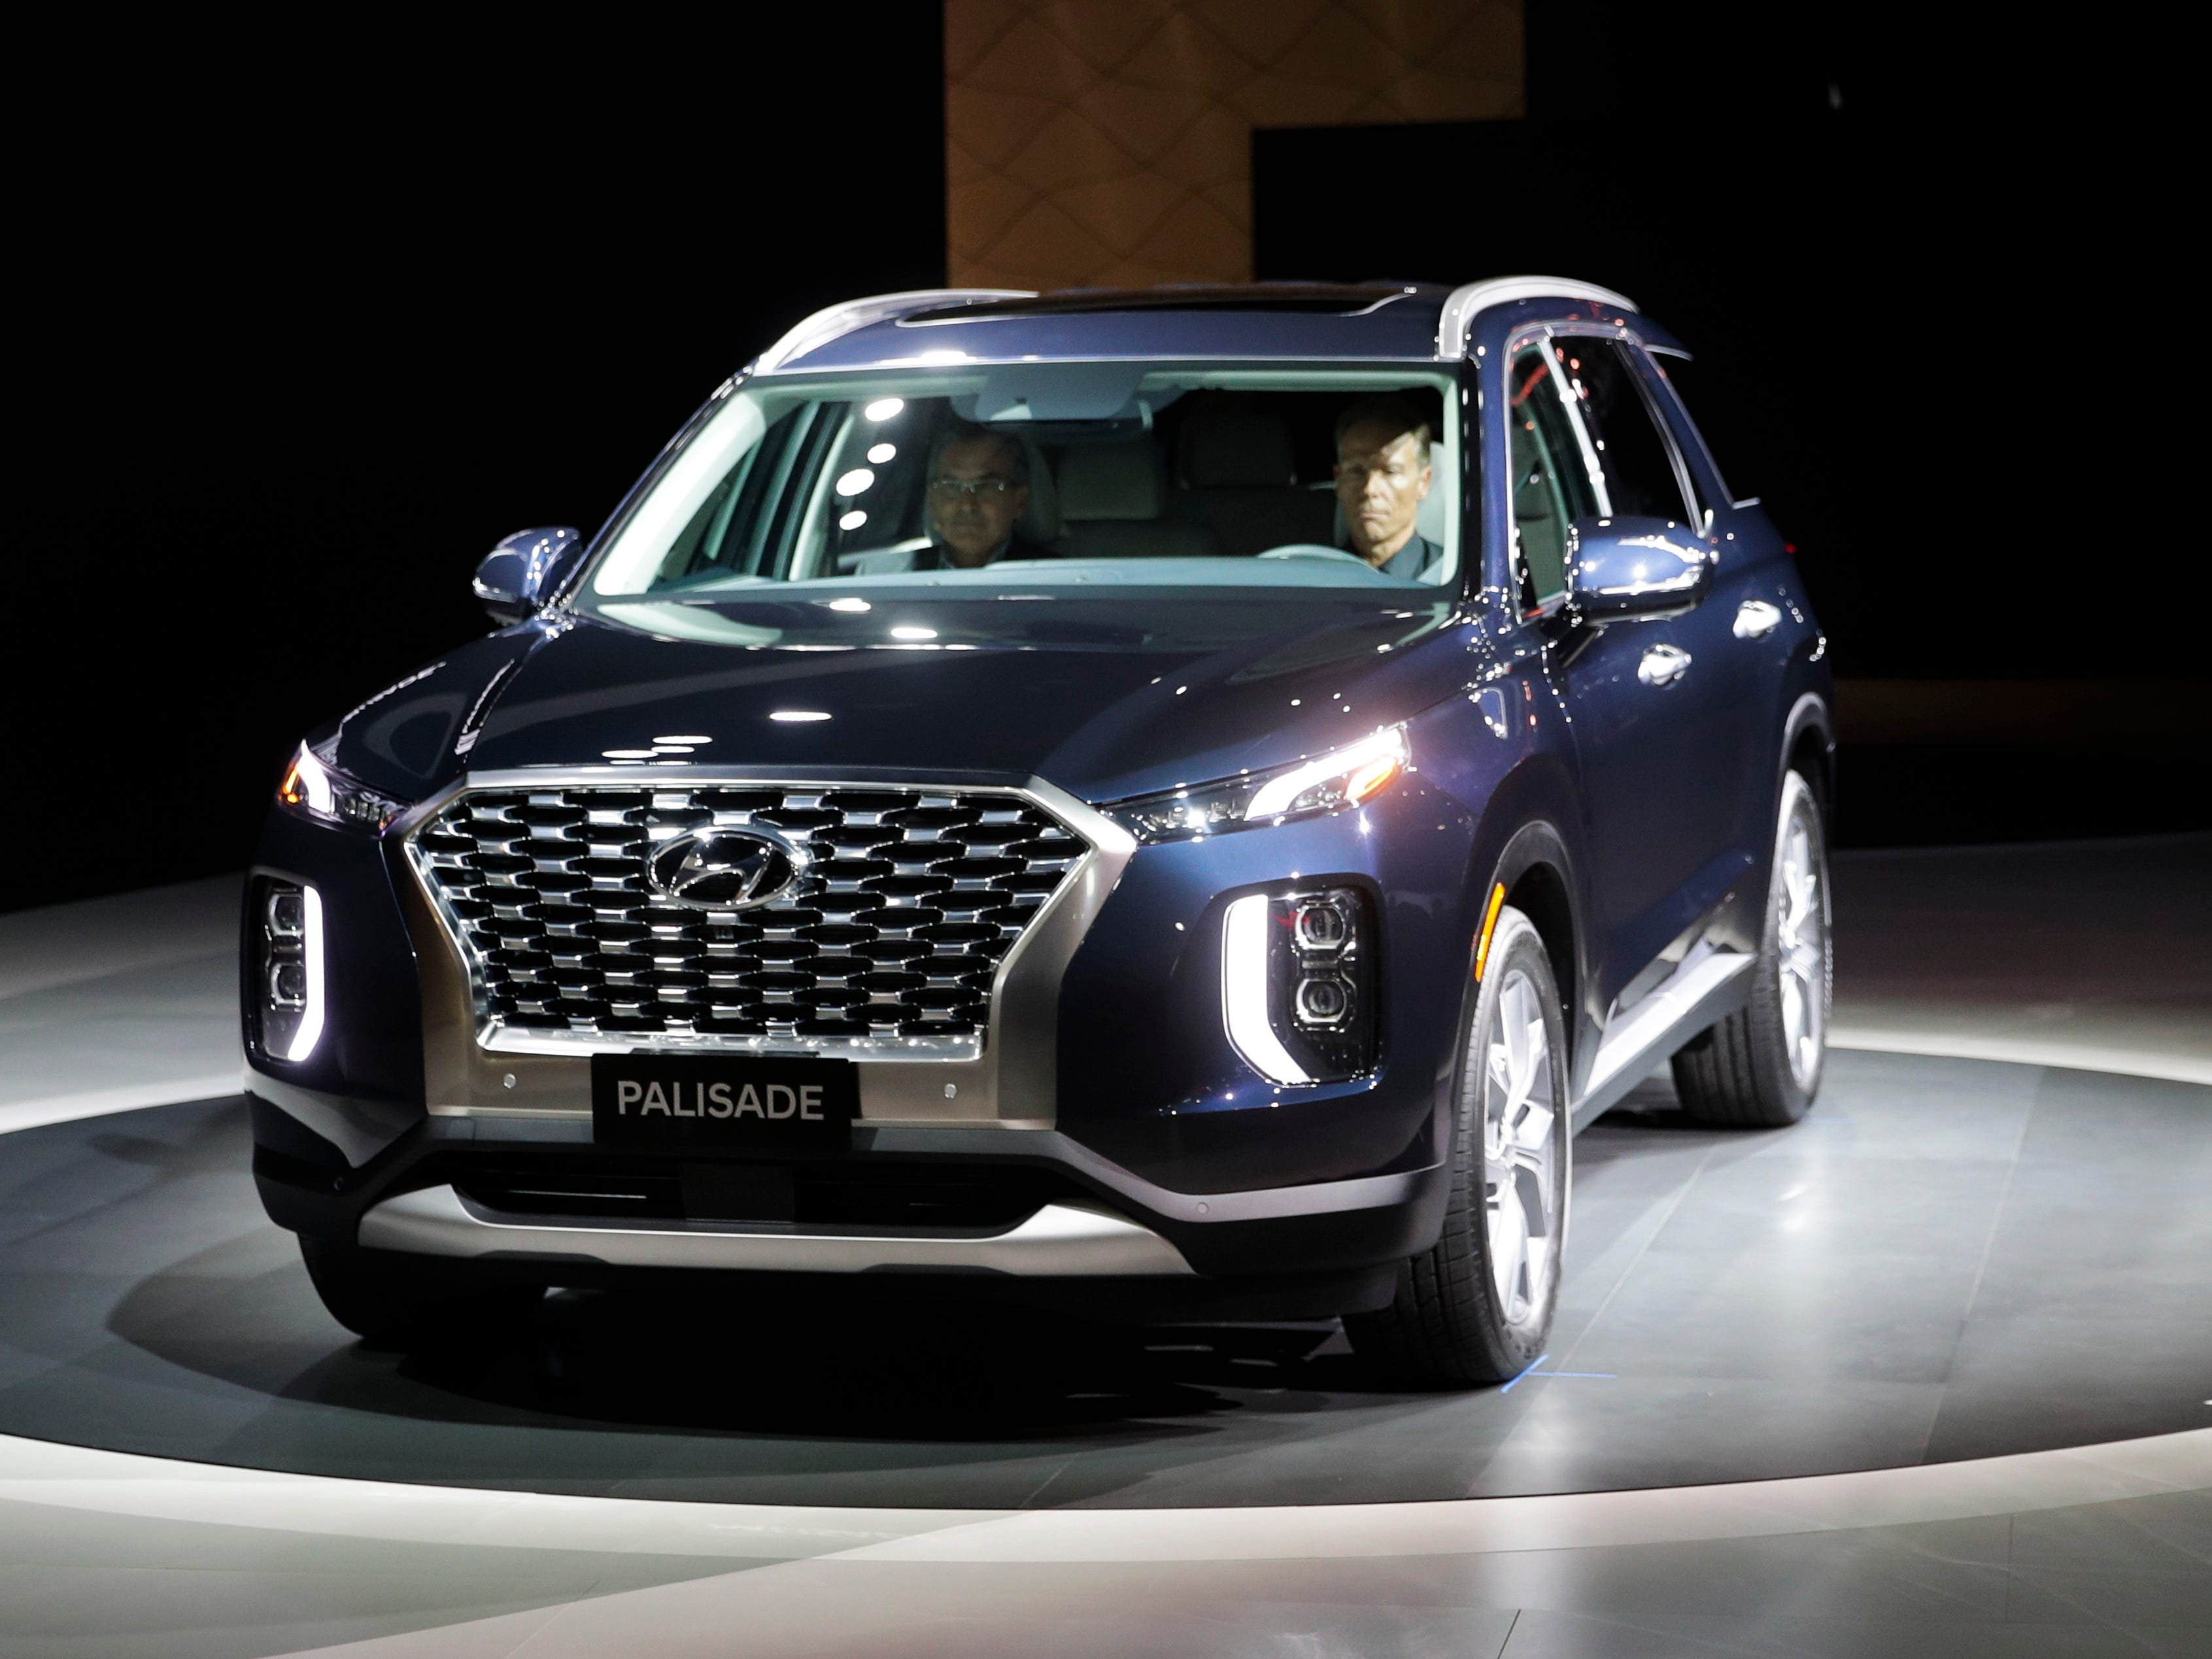 Brian Smith, left, Hyundai Motor America's COO, sits in the 2020 Hyundai Palisade to introduce the new SUV. The big Palisade expands the brand's family SUV lineup in a ute-crazed market.